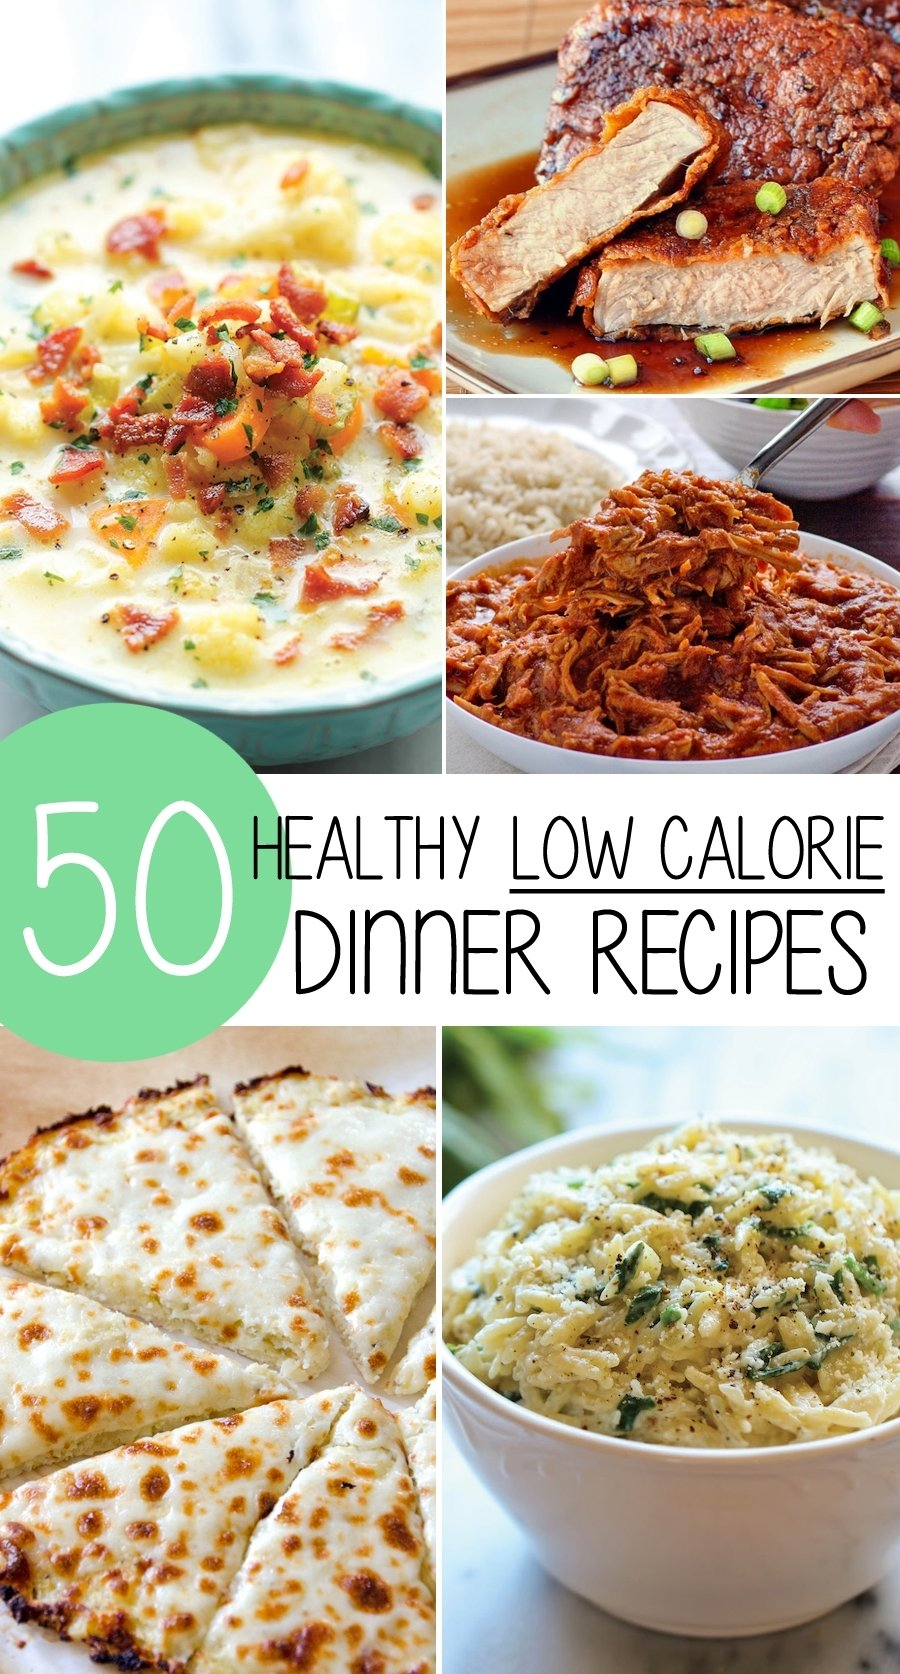 10 Most Popular Meal Ideas For Weight Loss 50 healthy low calorie weight loss dinner recipes 8 2020